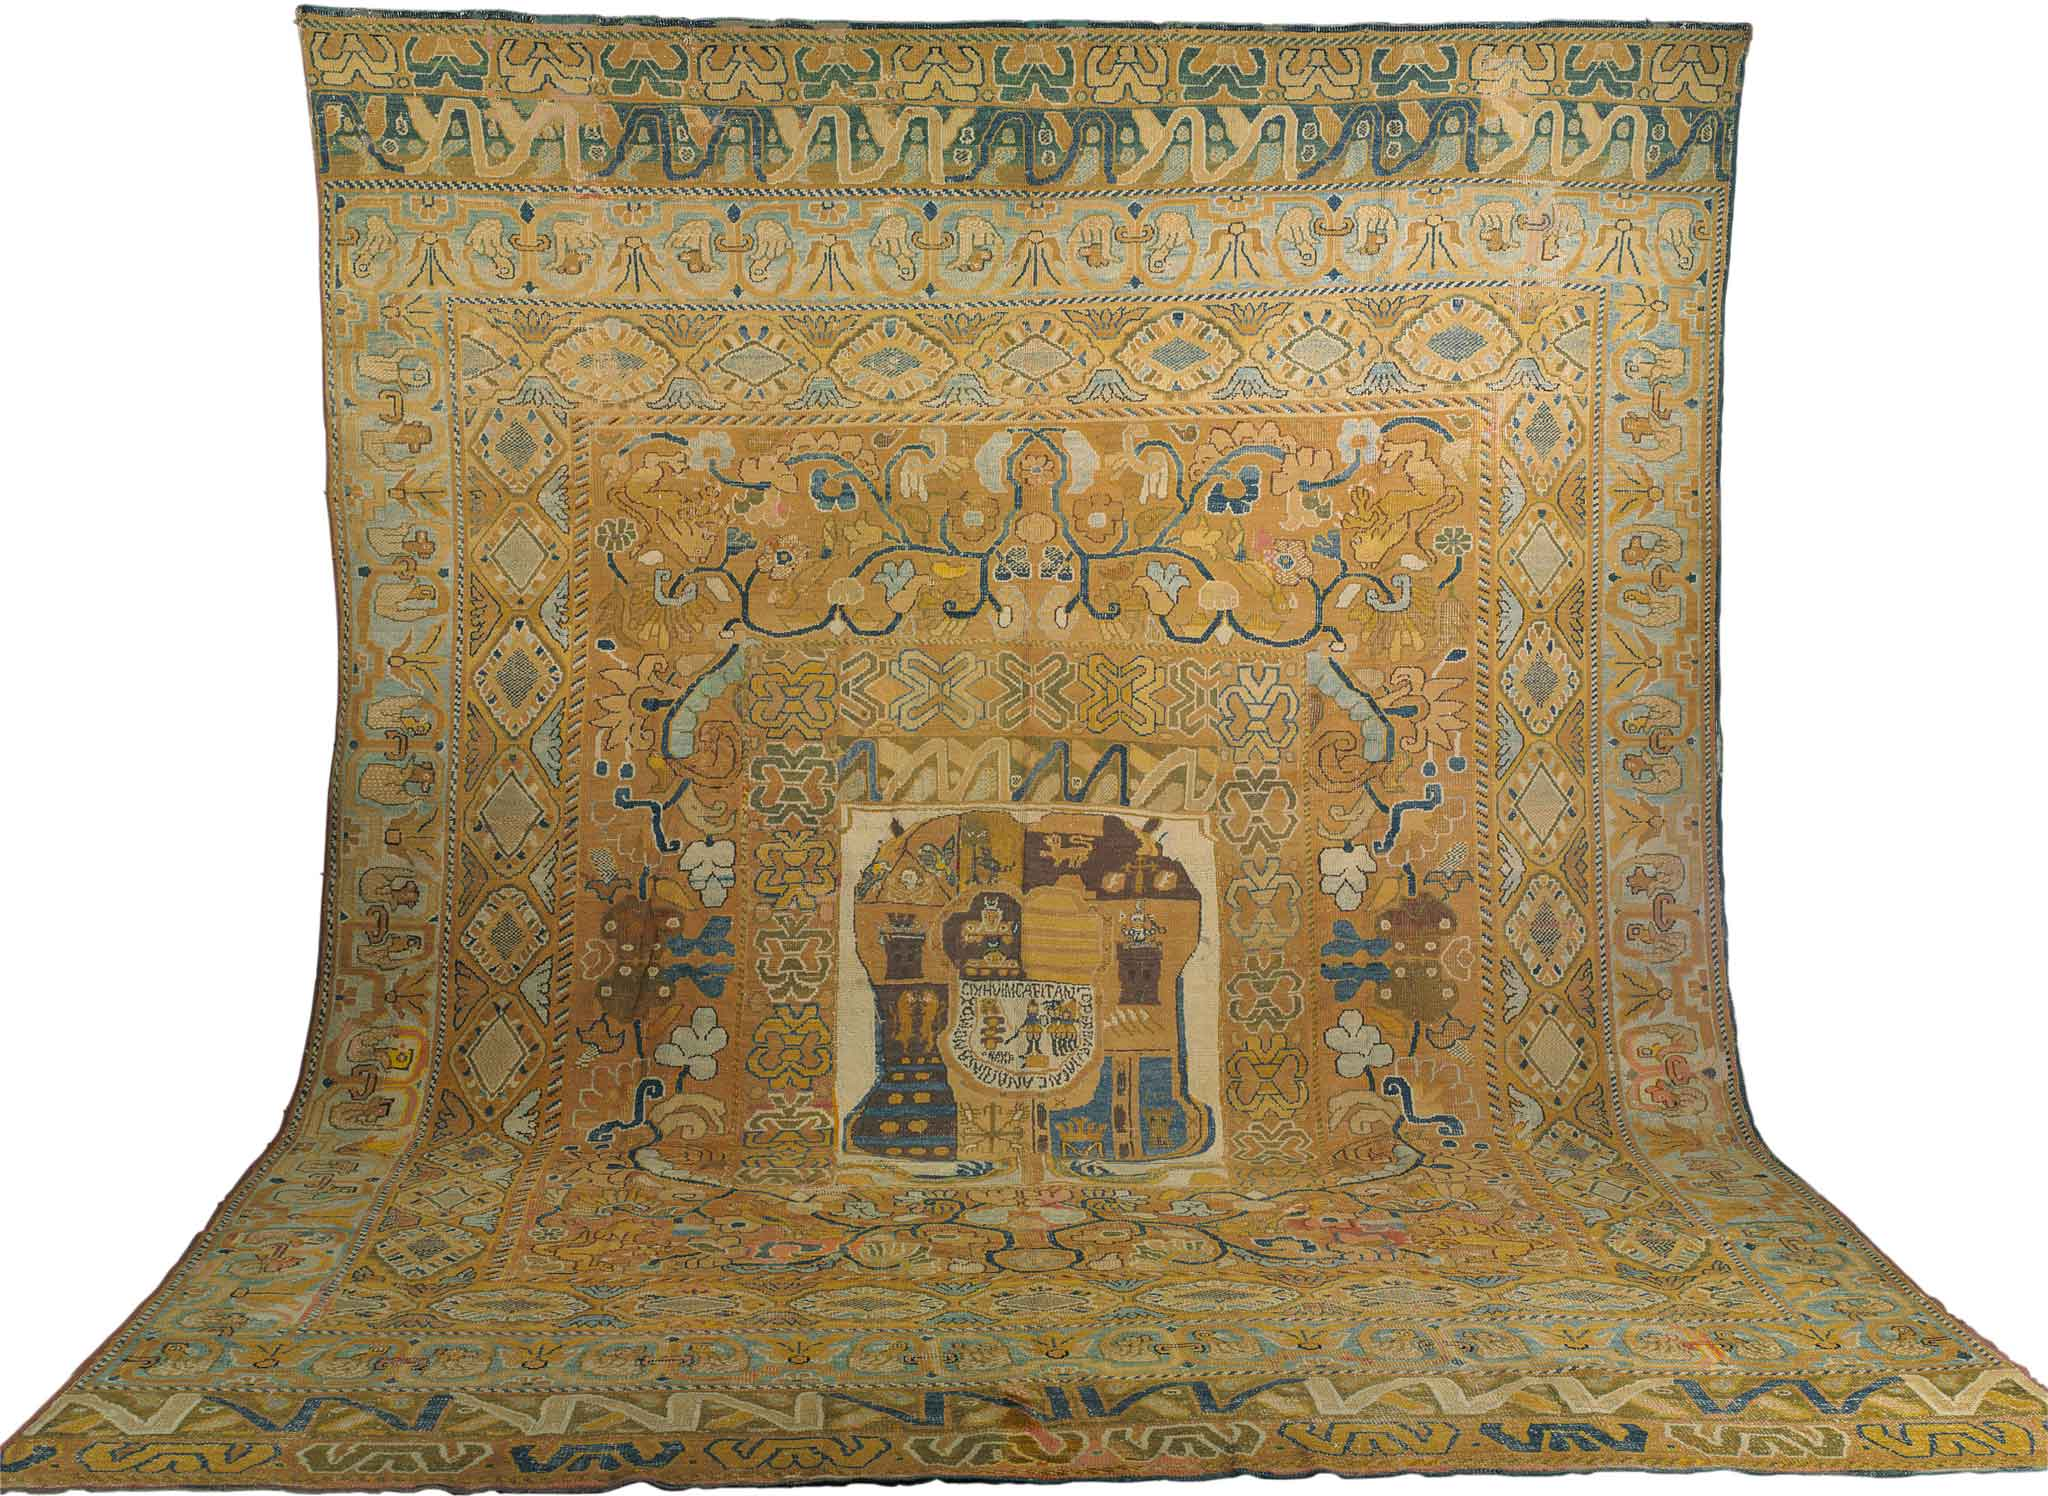 "An early 17th century Portuguese Armourial Carpet from the Doris Duke Collection. Sized approximately 19'5"" x 14'10"". Sold at auction by Christie's for $80,500 (USD) including premium."